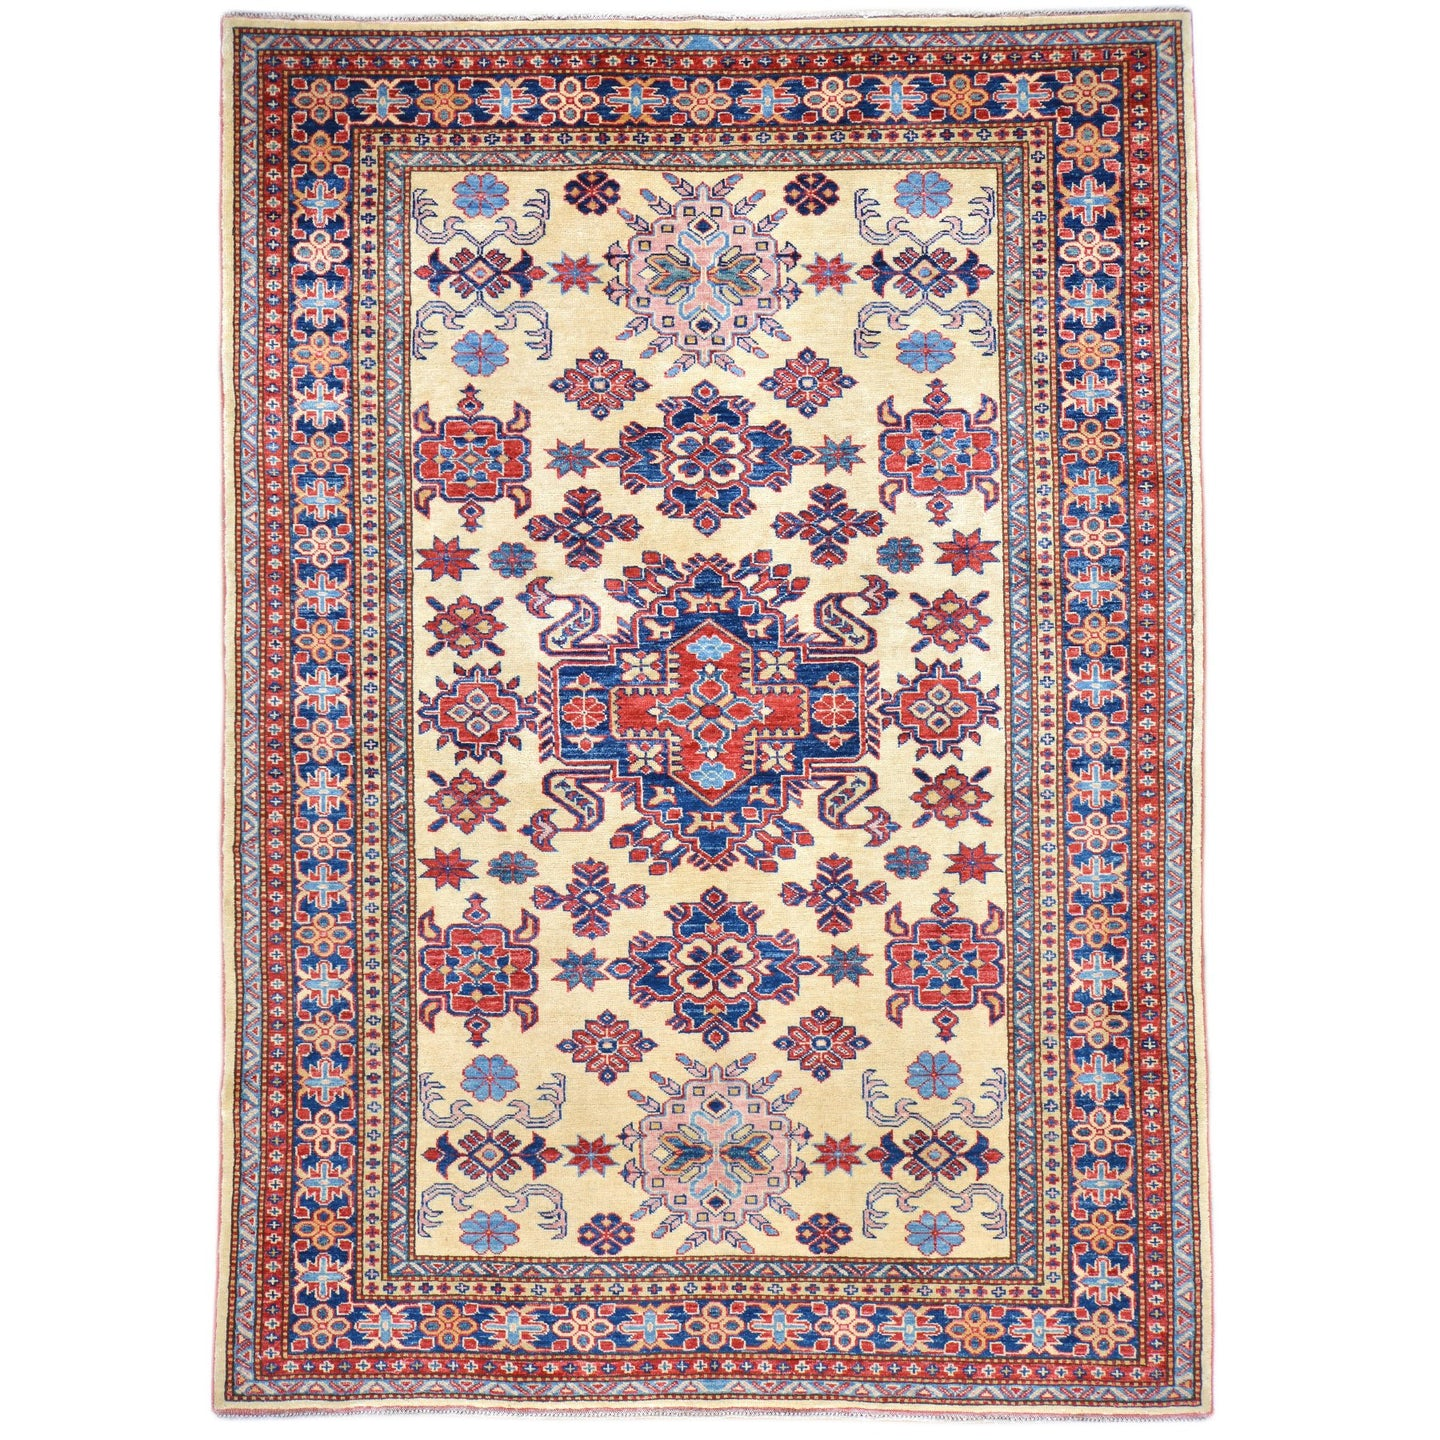 Oriental rugs, hand-knotted carpets, sustainable rugs, classic world oriental rugs, handmade, United States, interior design,  Brral-675